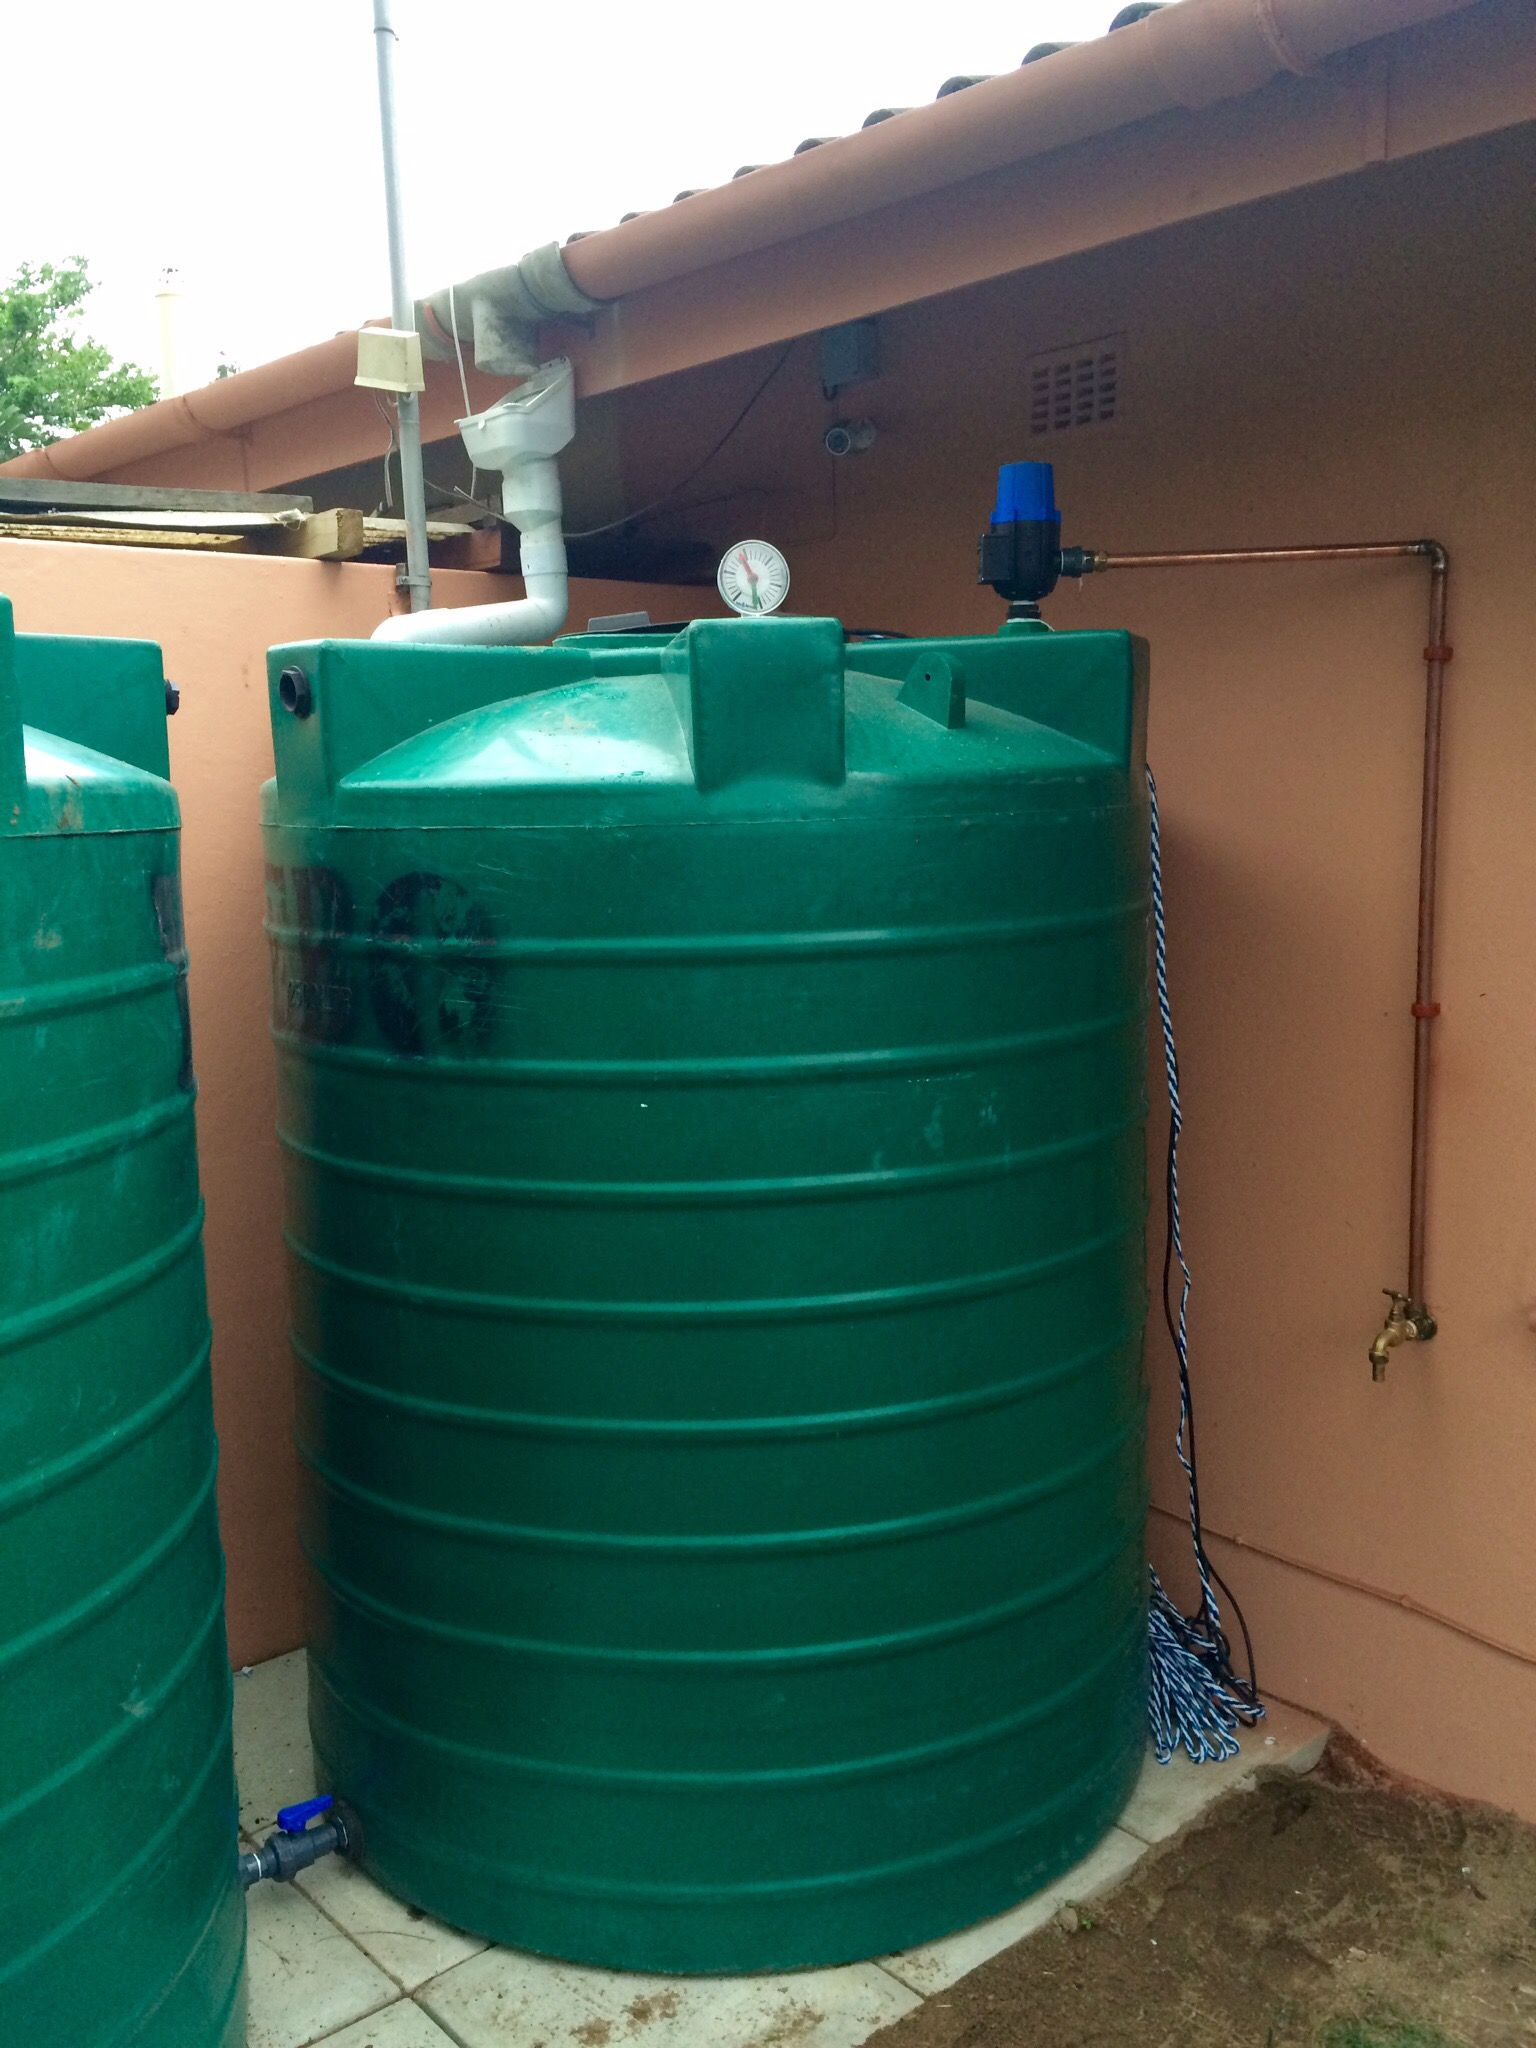 Simple Rainwater Harvesting System To Recover Rainwater For Washing Agua Muebles